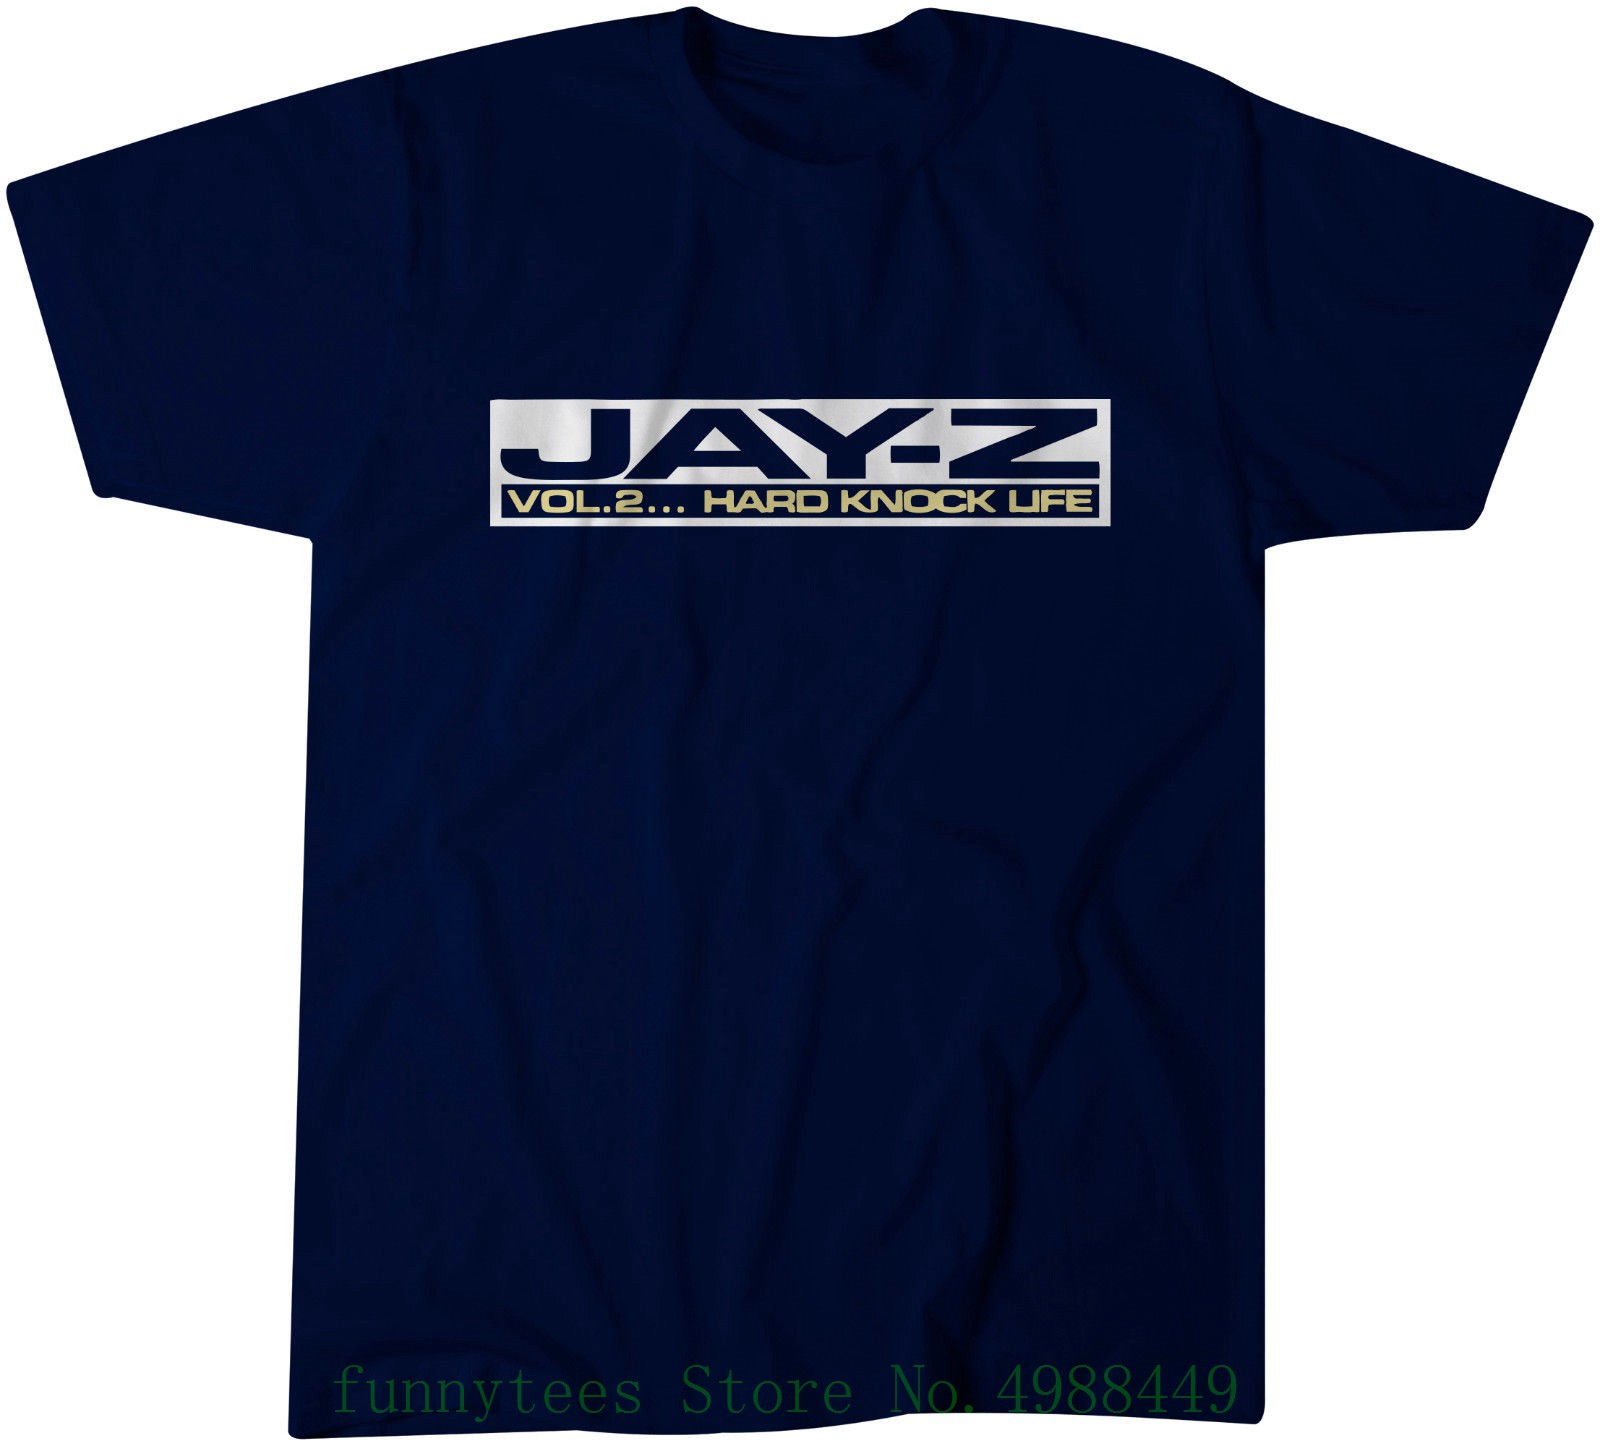 Jay - Z Hard Knock Life Promo T Shirt - Classic Hip - Hop - Roc - A - Fella Men's High Quality Tops Hipster Tees image